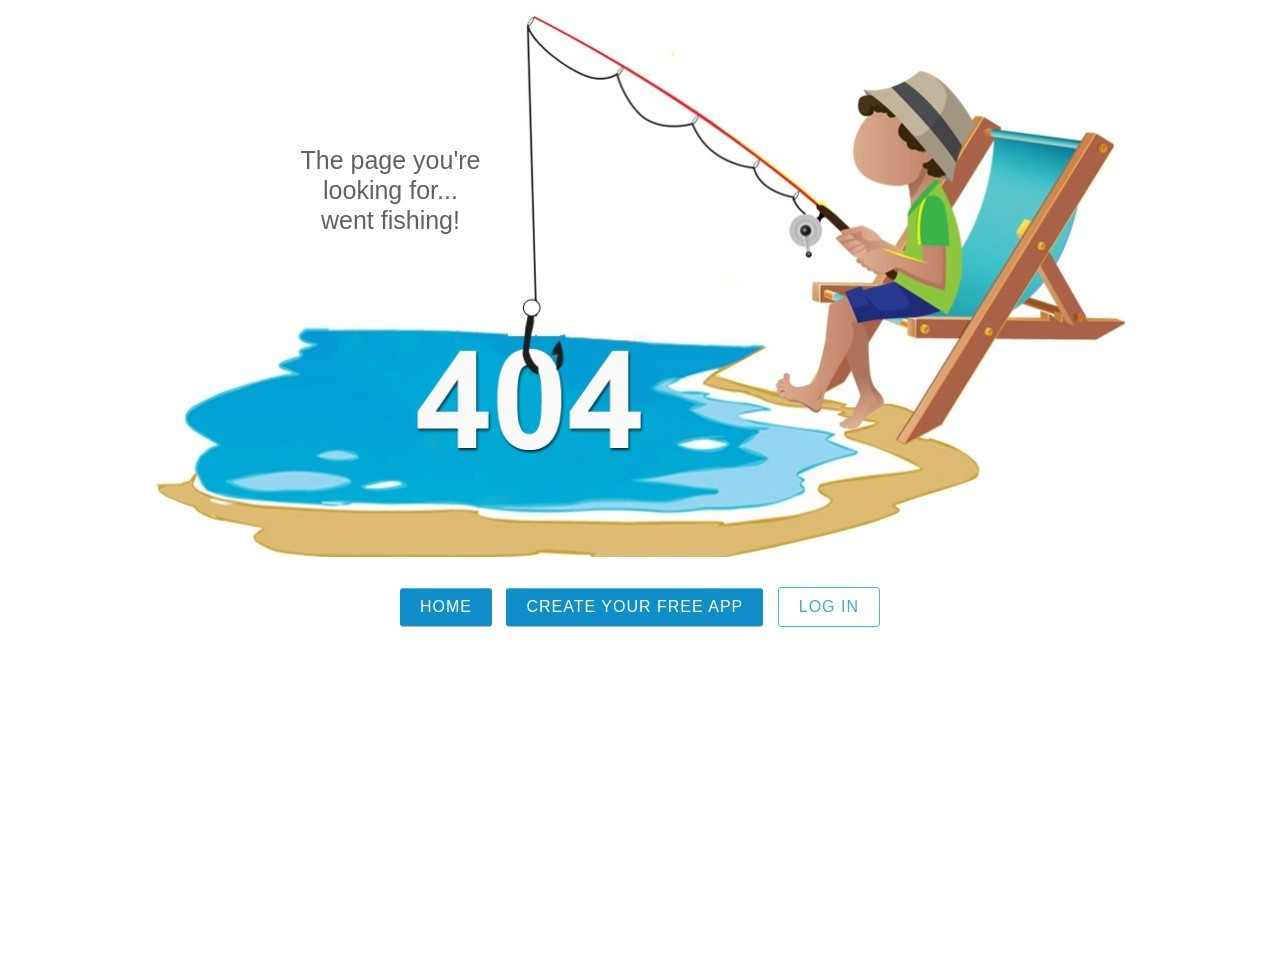 What Difference will Swift make in iOS App Development?